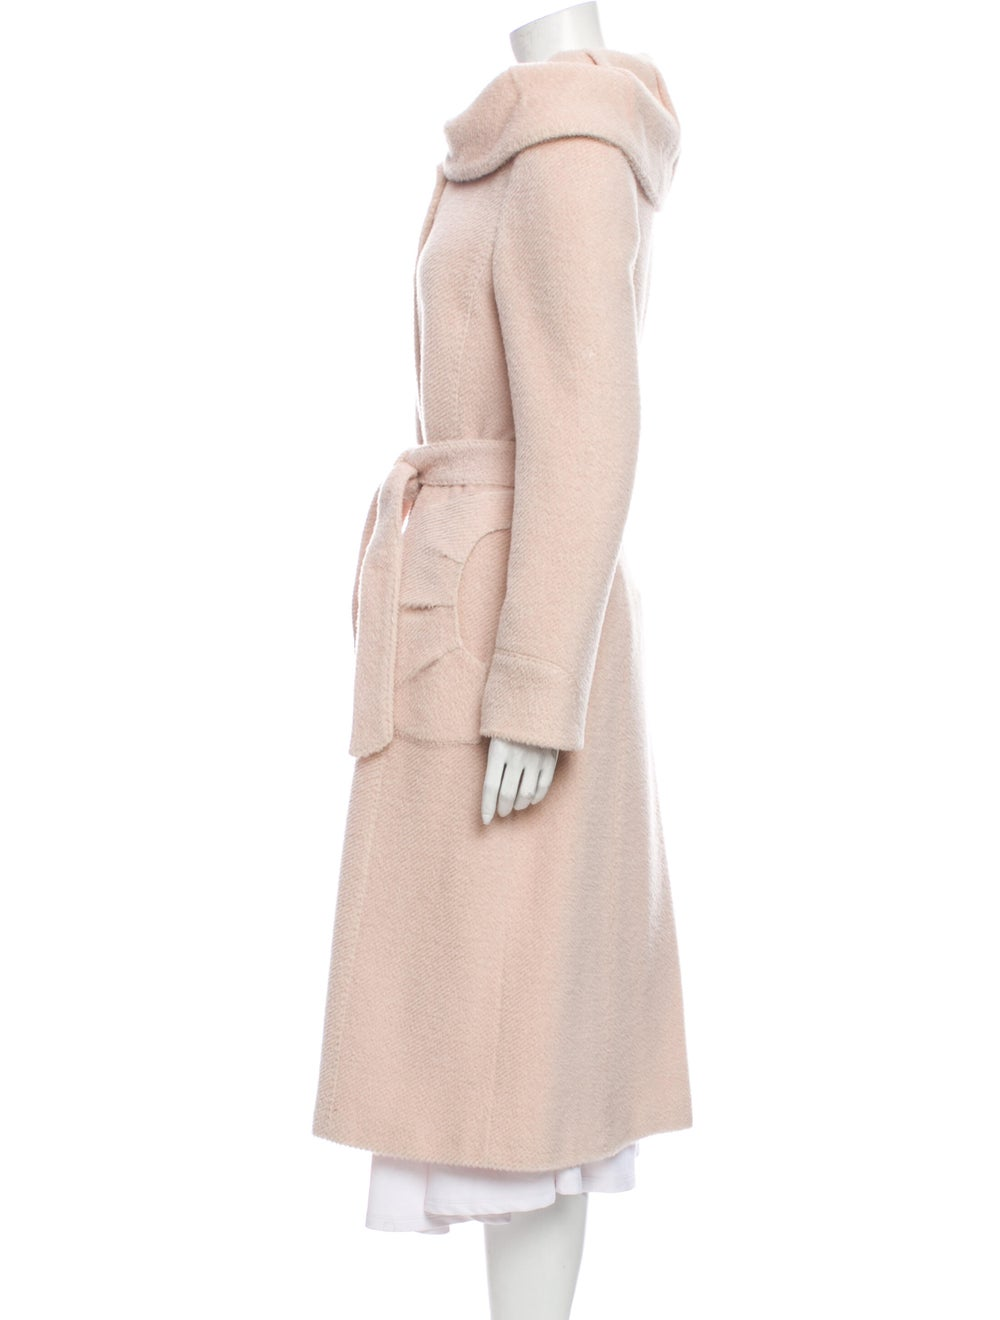 Searle Trench Coat Pink - image 2